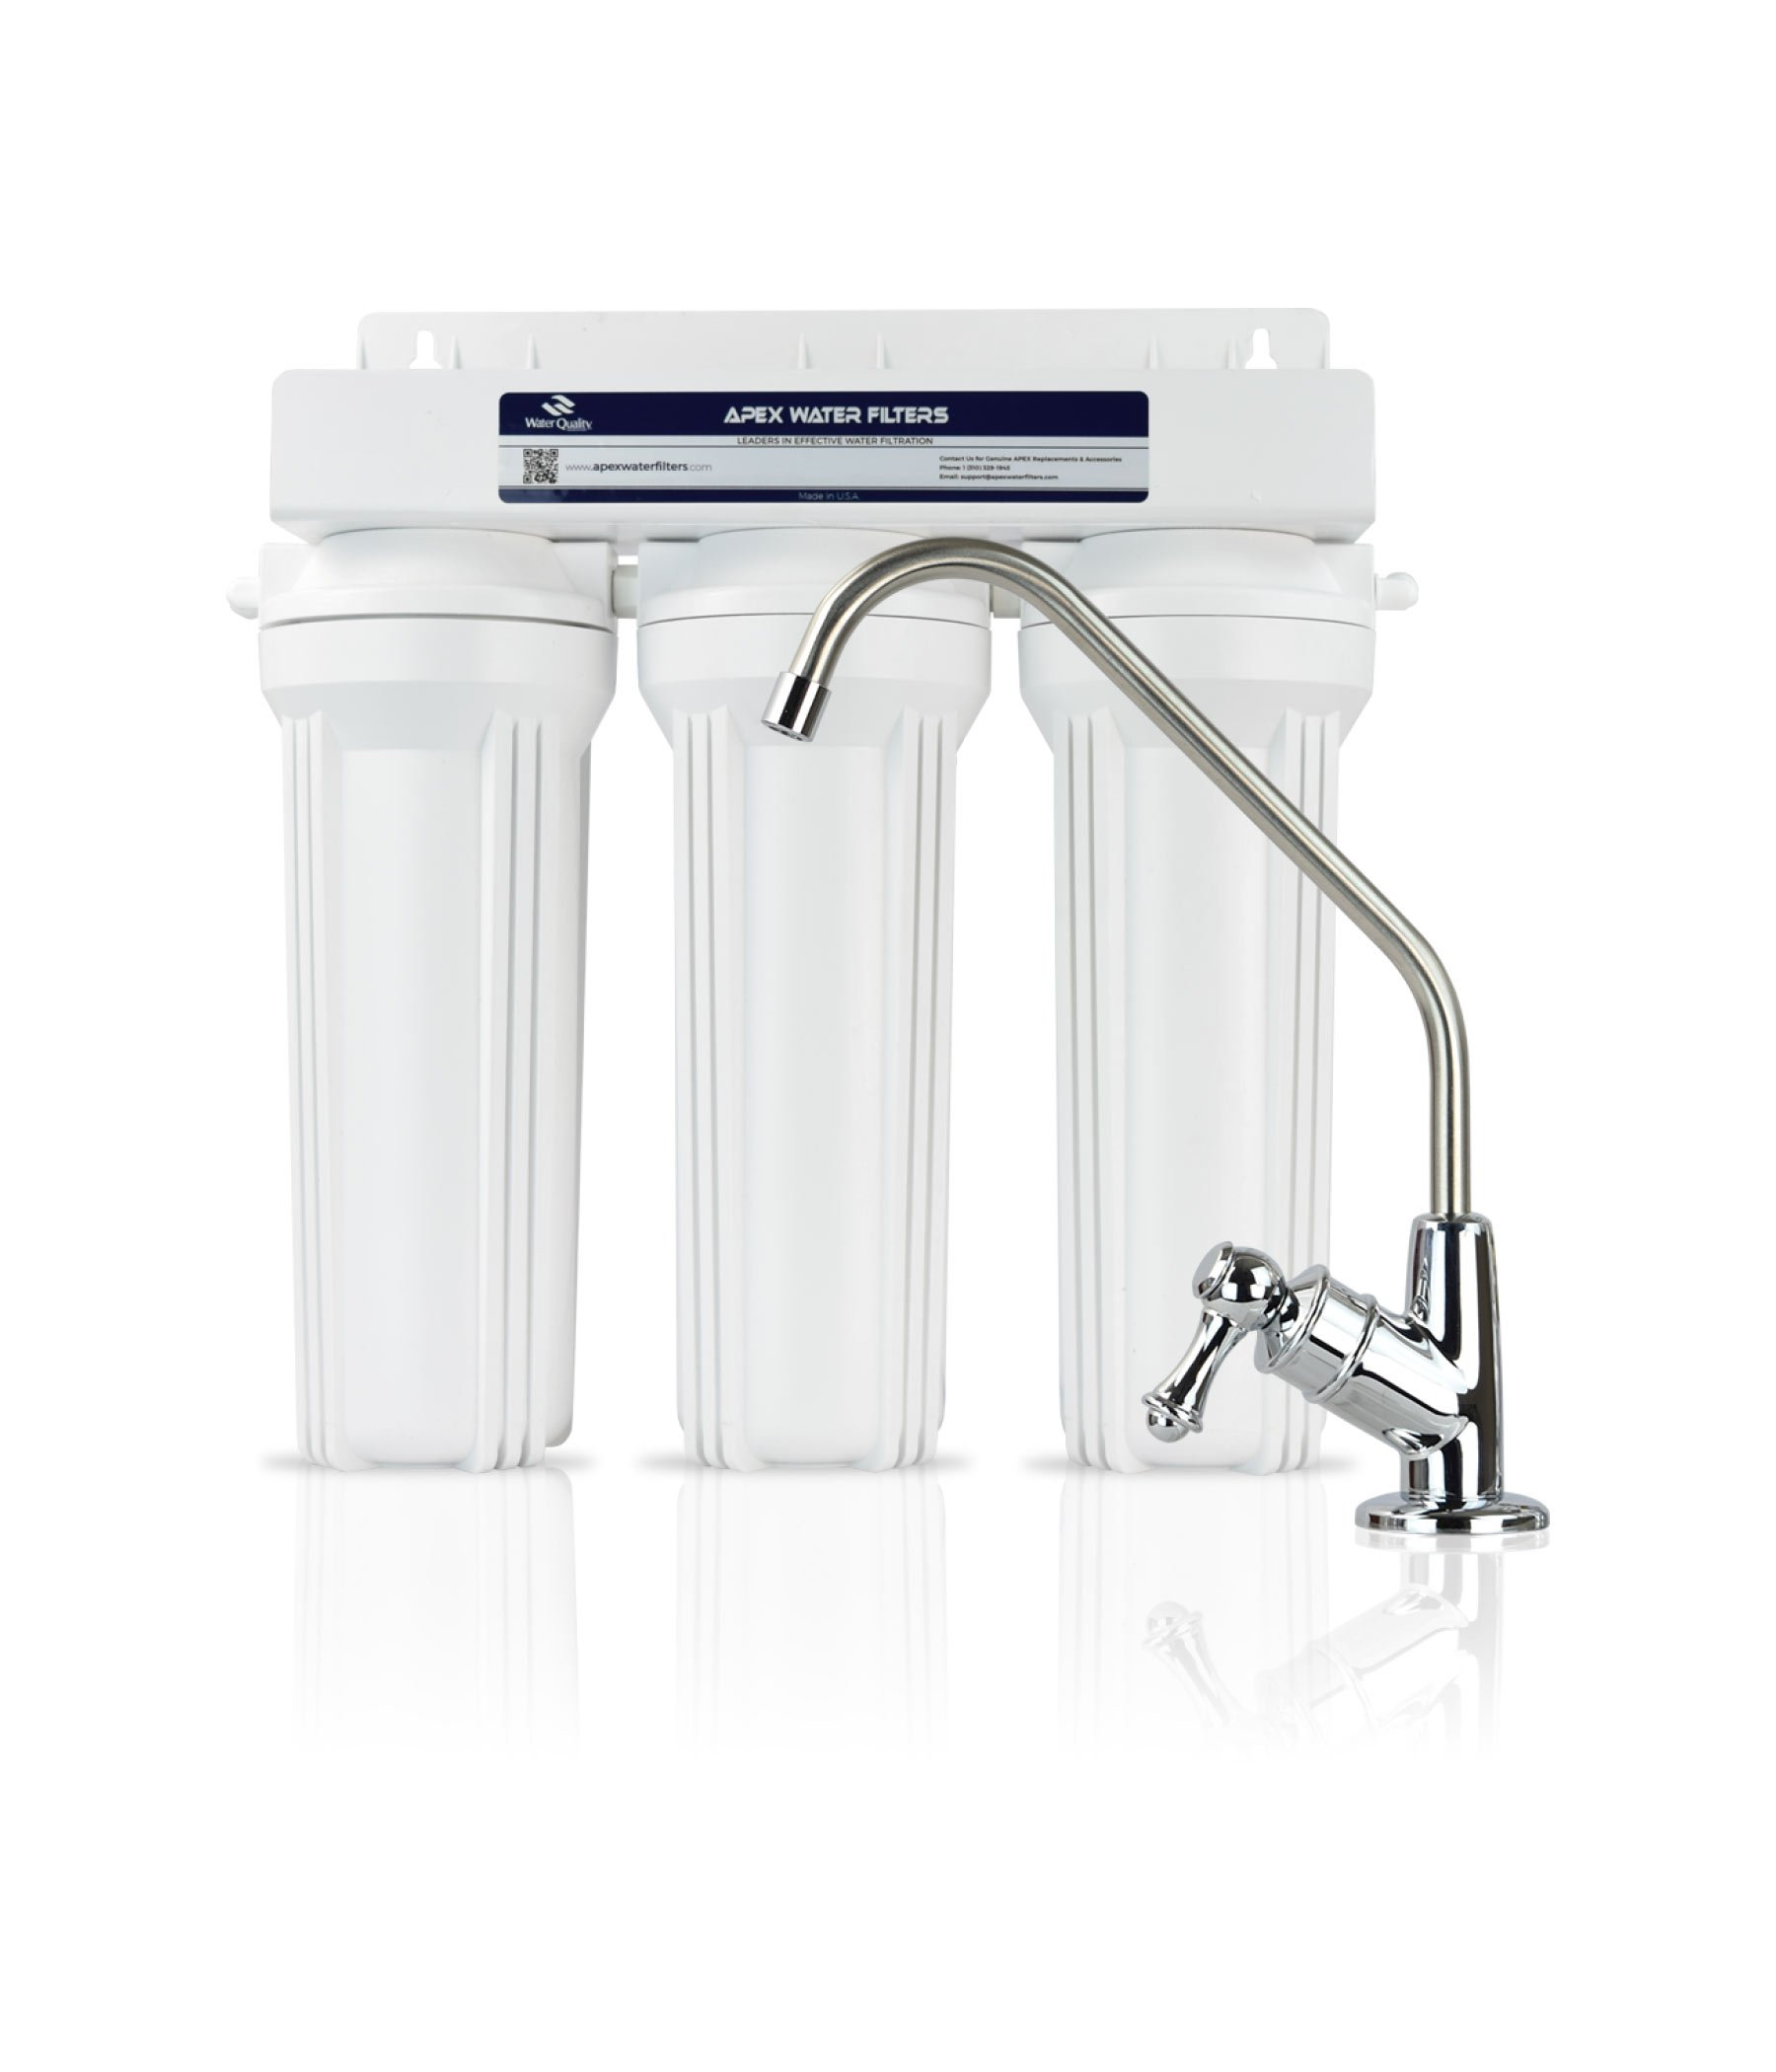 APEX MR-2030 Undercounter Water Filter System - Made in U.S.A.